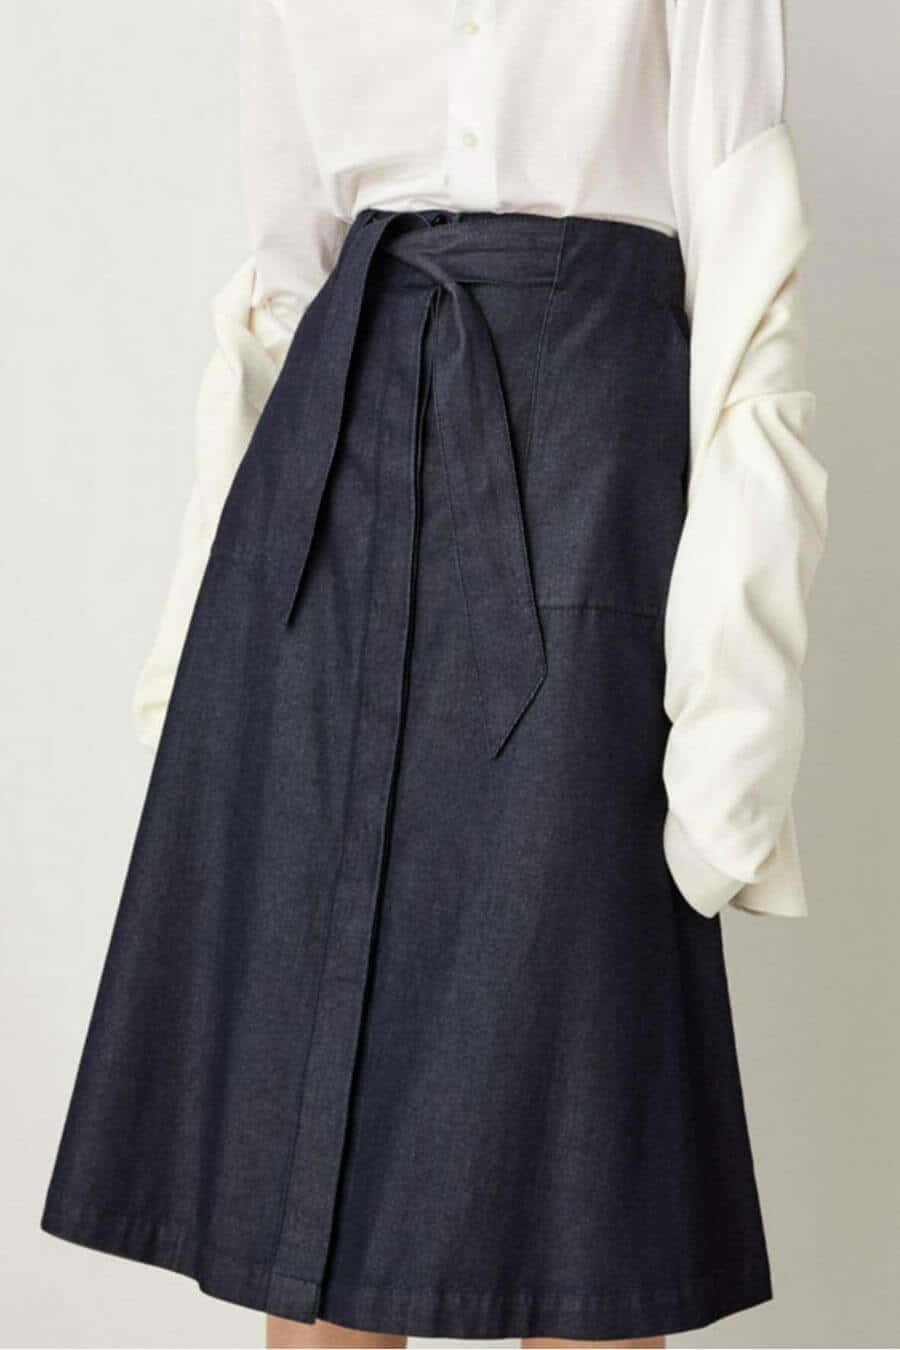 Style Theory_massimo-dutti-denim-skirt-with-bow-detail-3